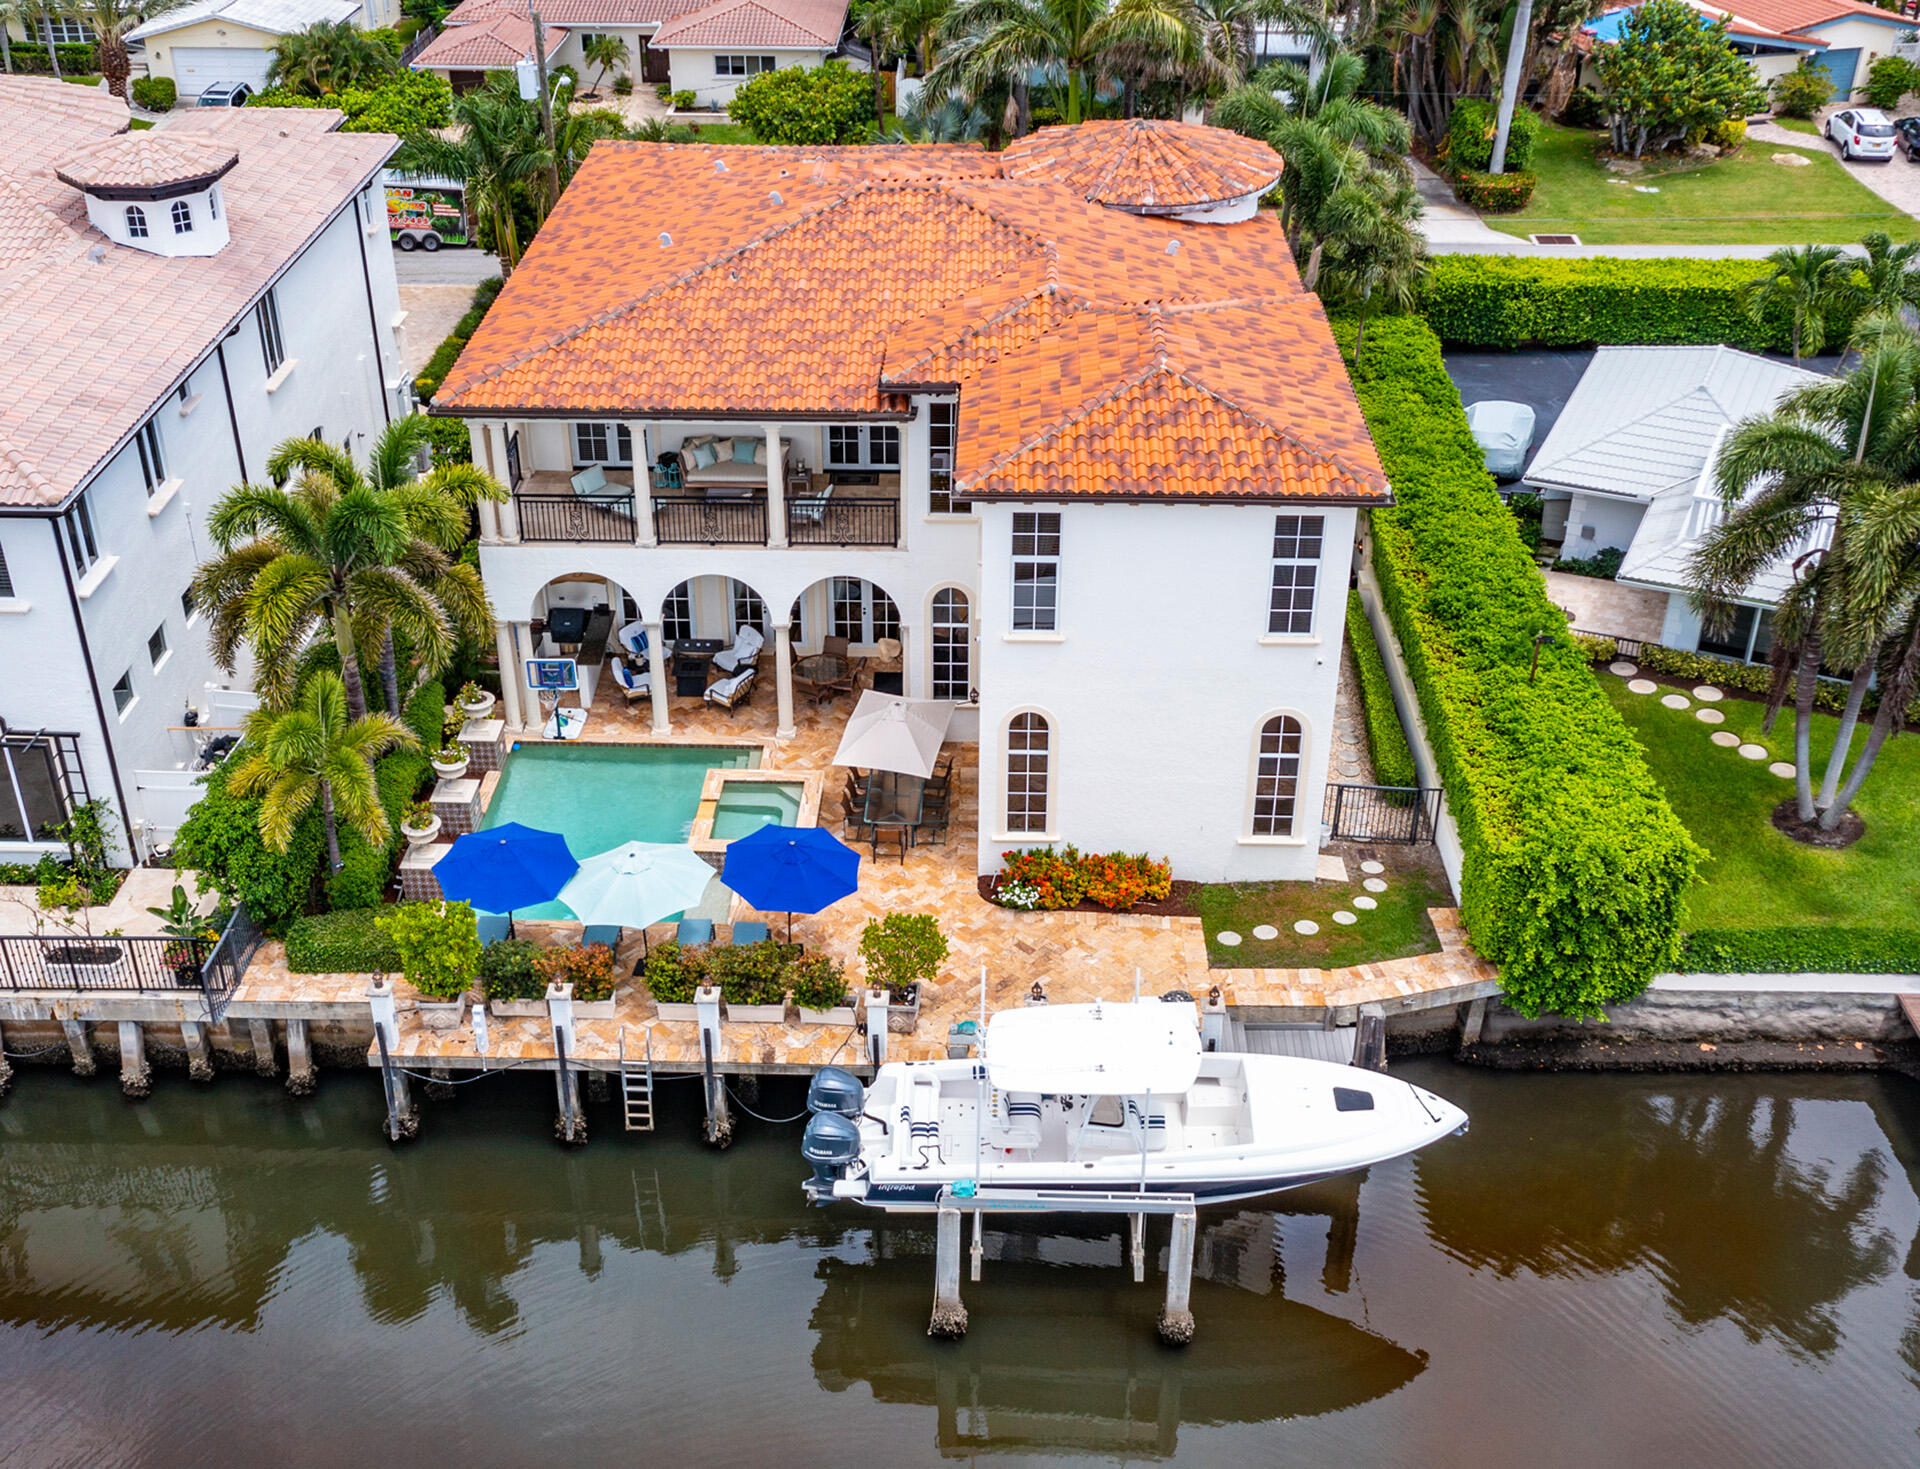 1040 Lewis Cove Road, Delray Beach, Florida 33483, 5 Bedrooms Bedrooms, ,6 BathroomsBathrooms,Single Family Detached,For Sale,Lewis Cove,RX-10737088